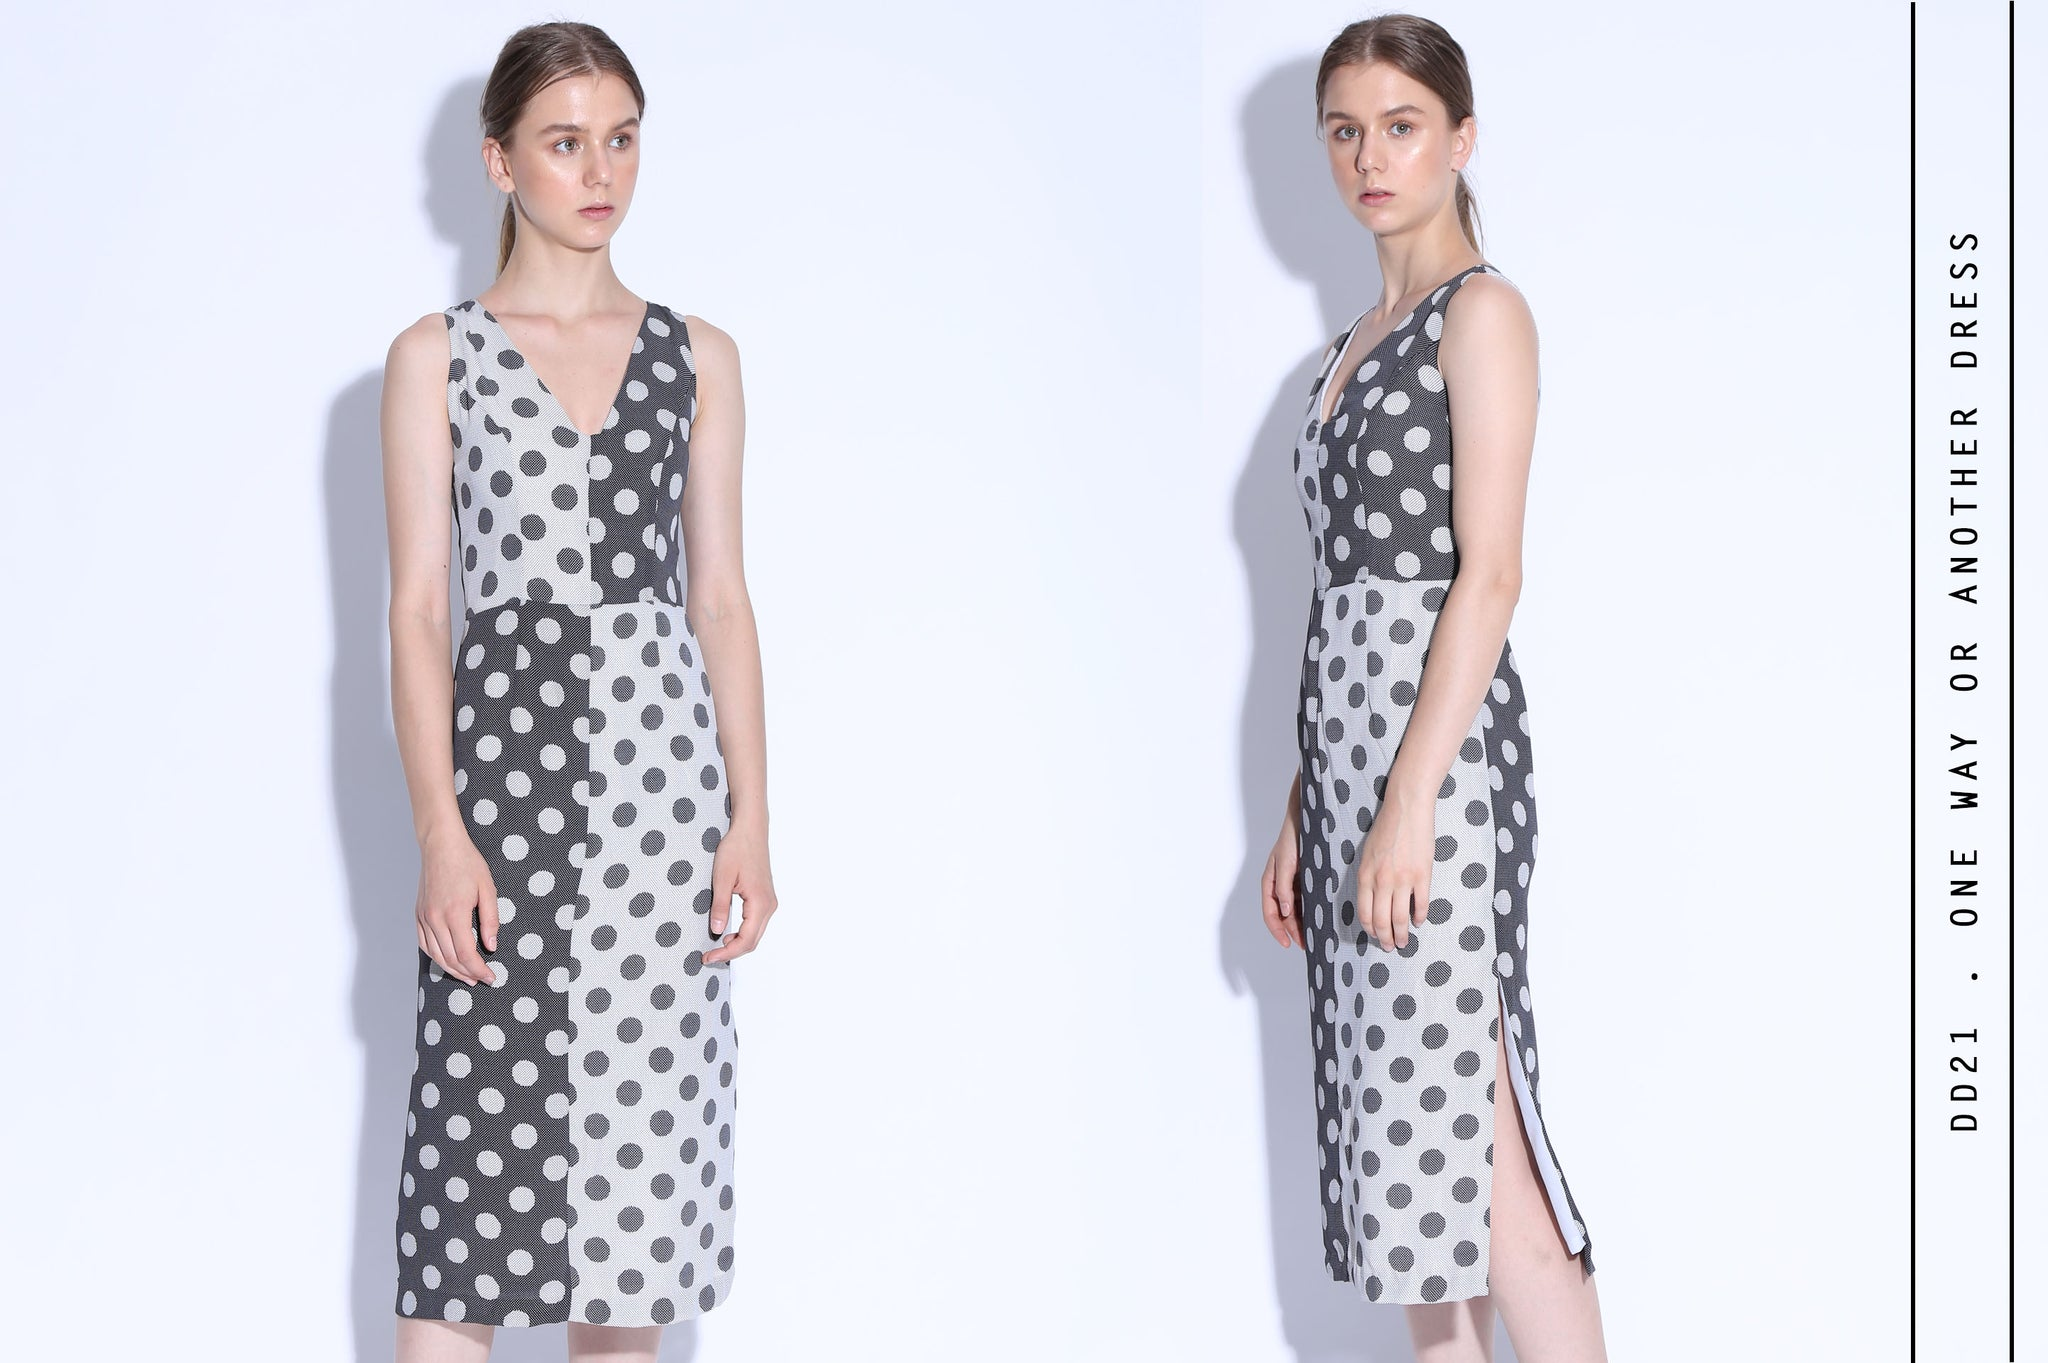 ONE WAY OR ANOTHER Polkadot 2 Tone Patchwork Midi Dress